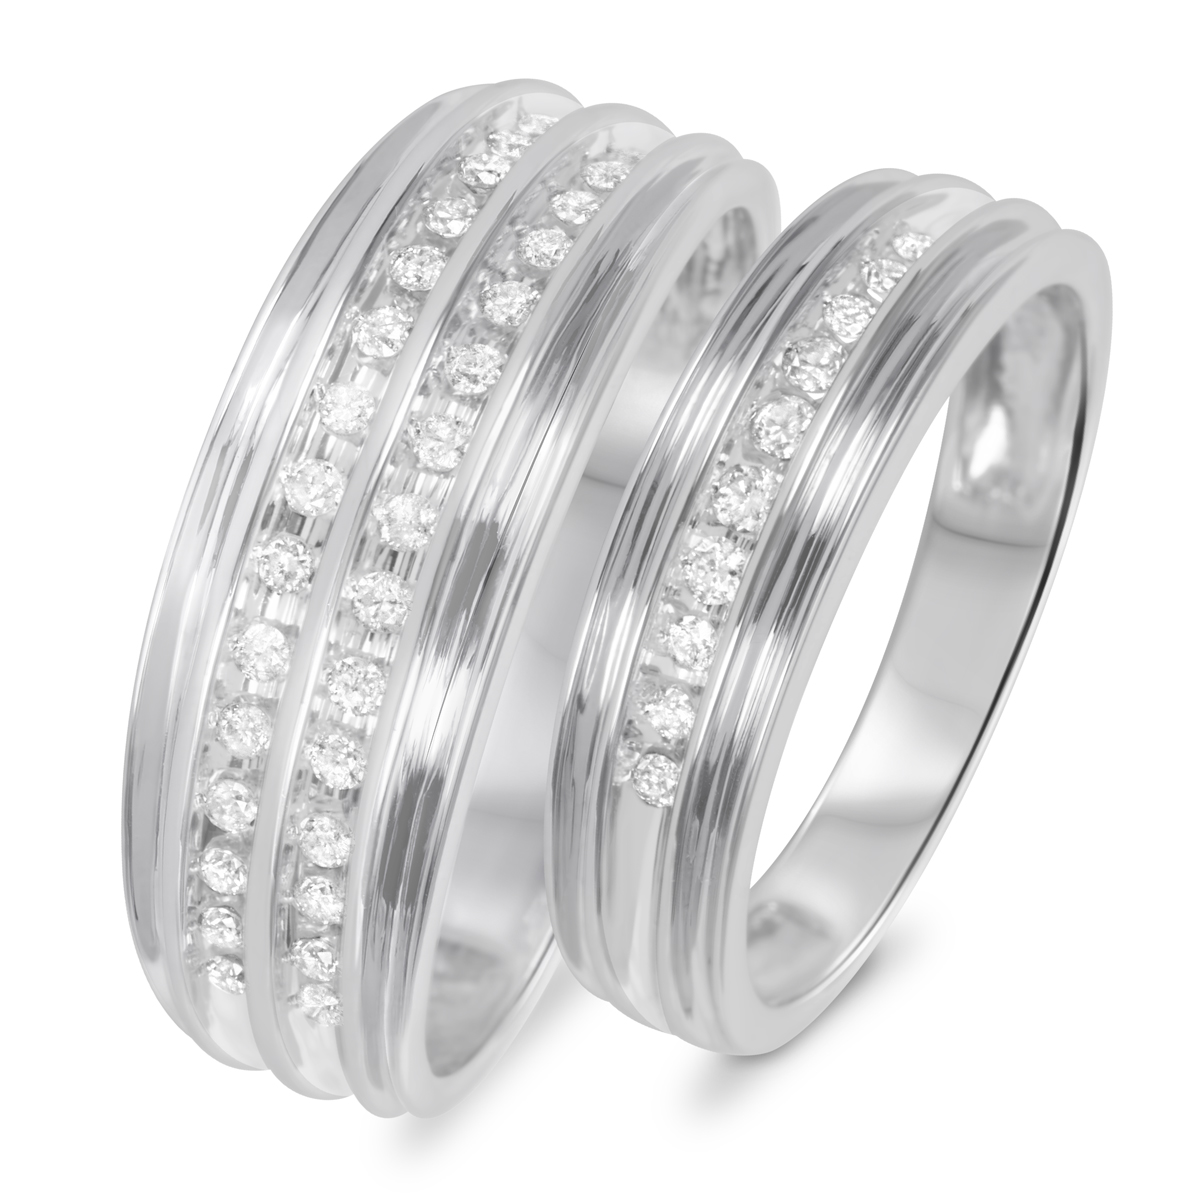 3 8 carat t w his and hers wedding rings 14k